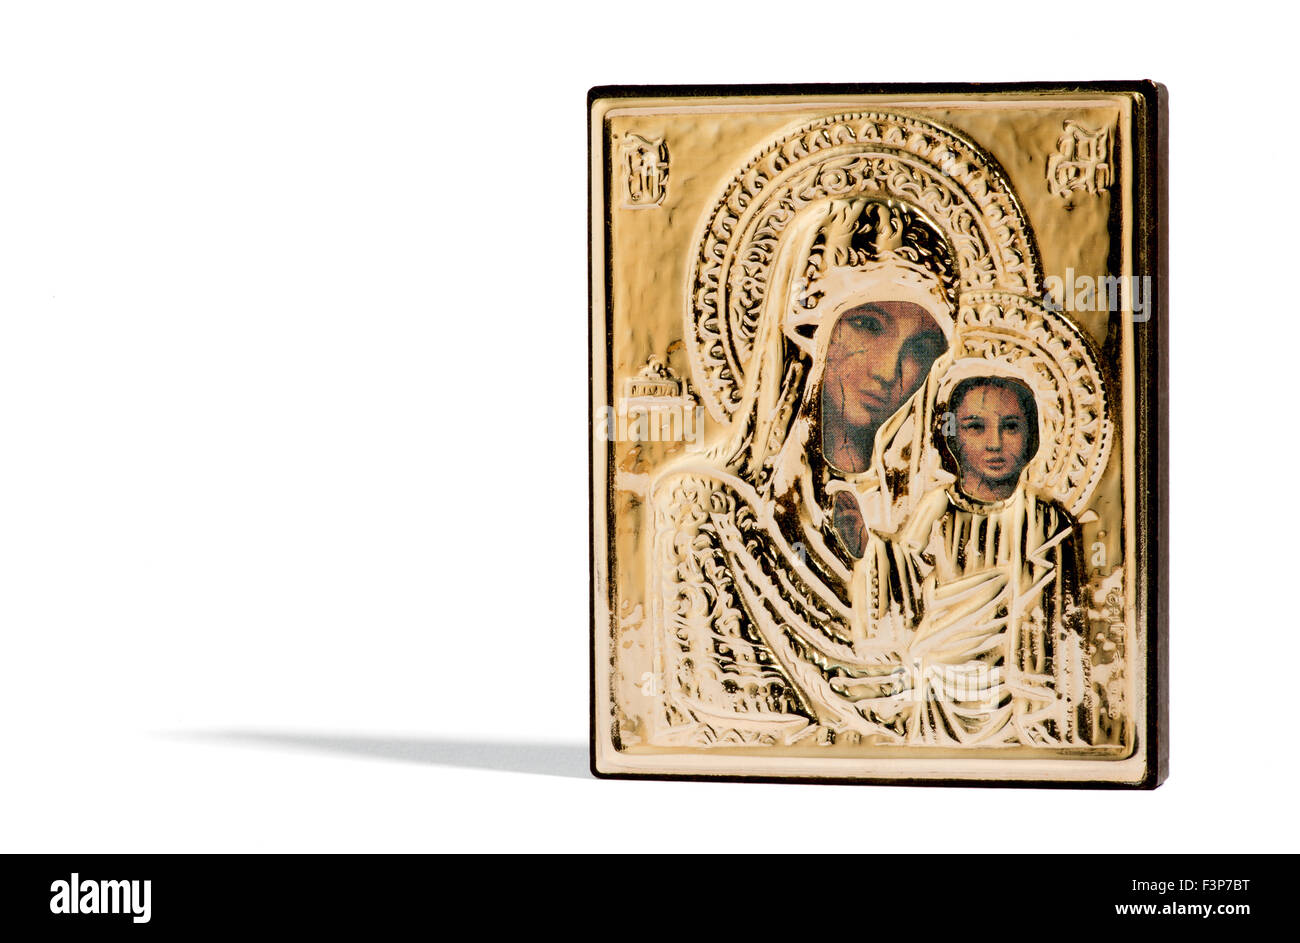 Painted wooden religious icon of the Virgin Mary and baby Jesus - Stock Image